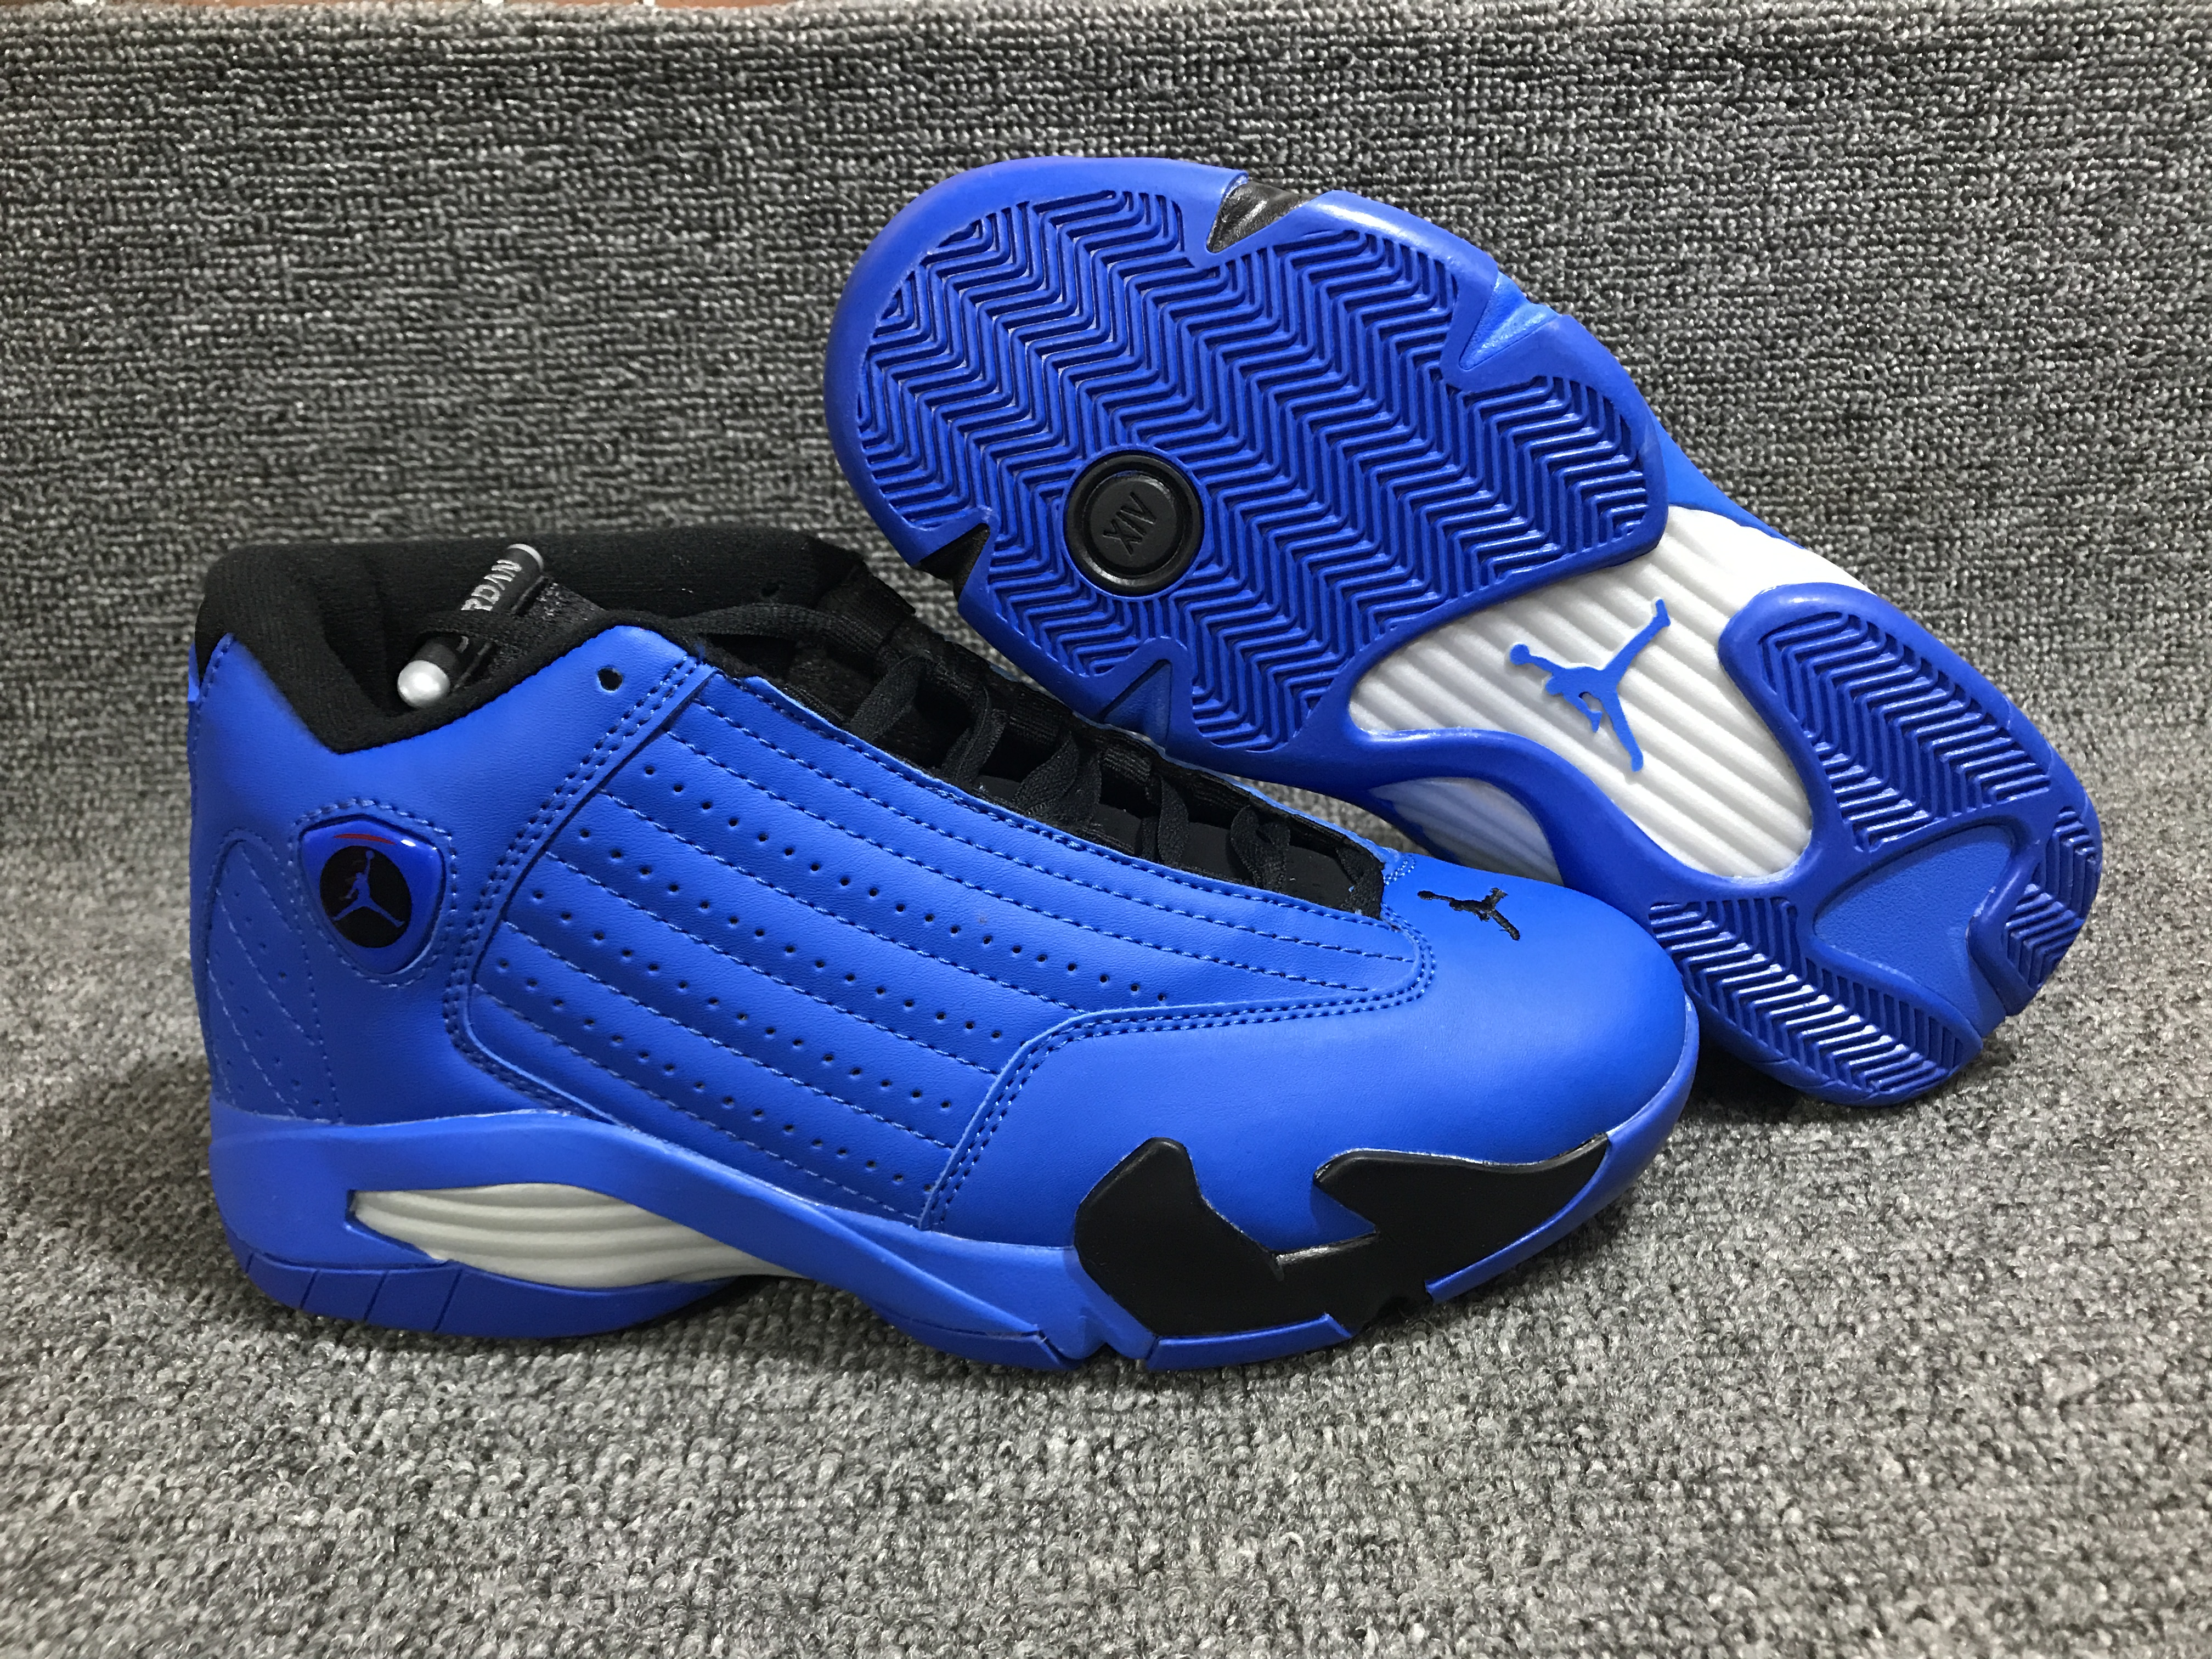 New Air Jordan 14 Blue Black White Shoes